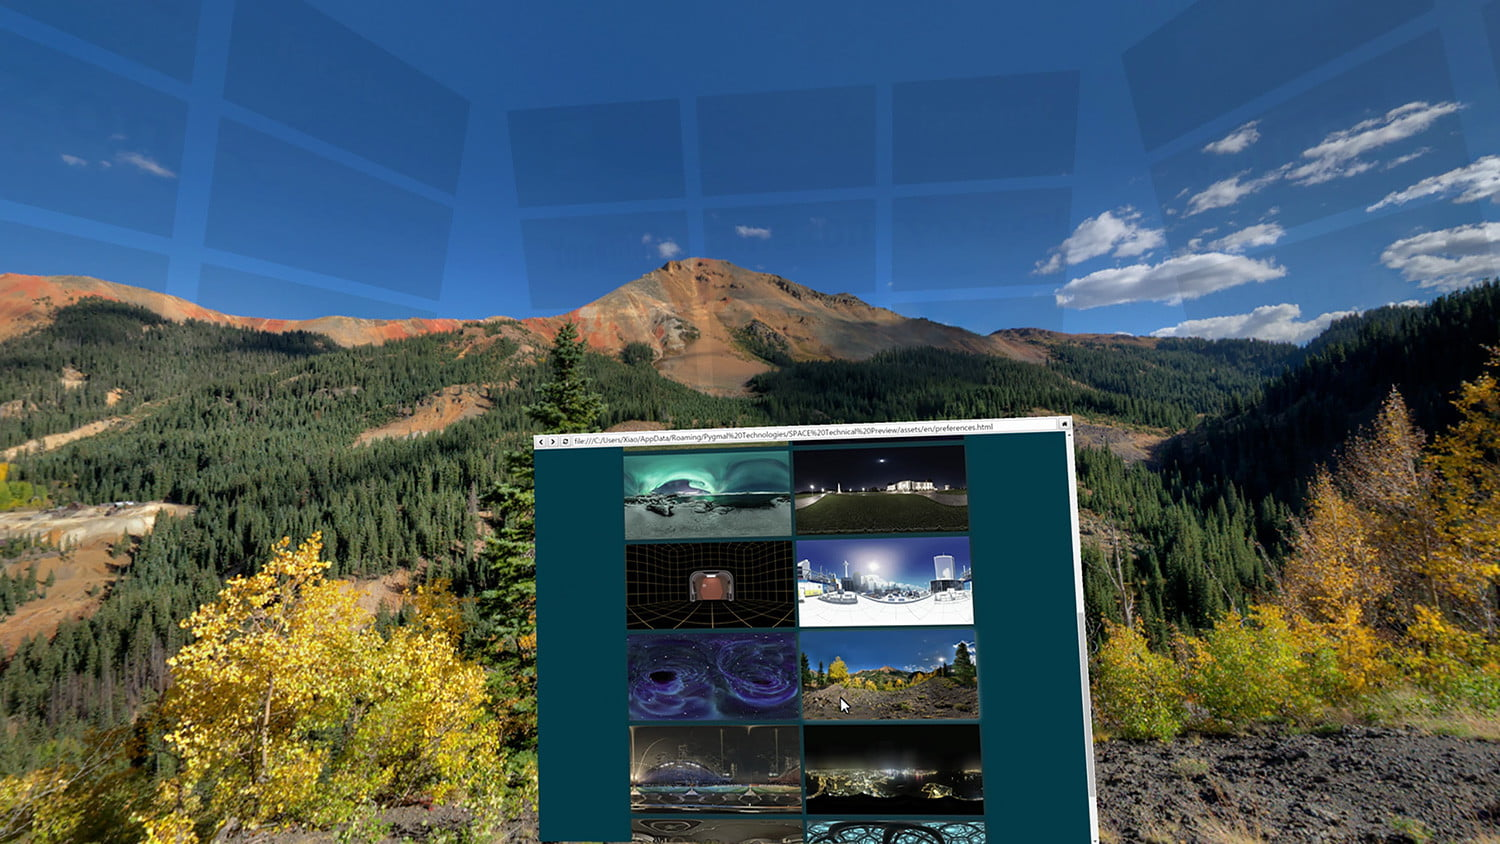 space virtual reality office 2 change background mountain